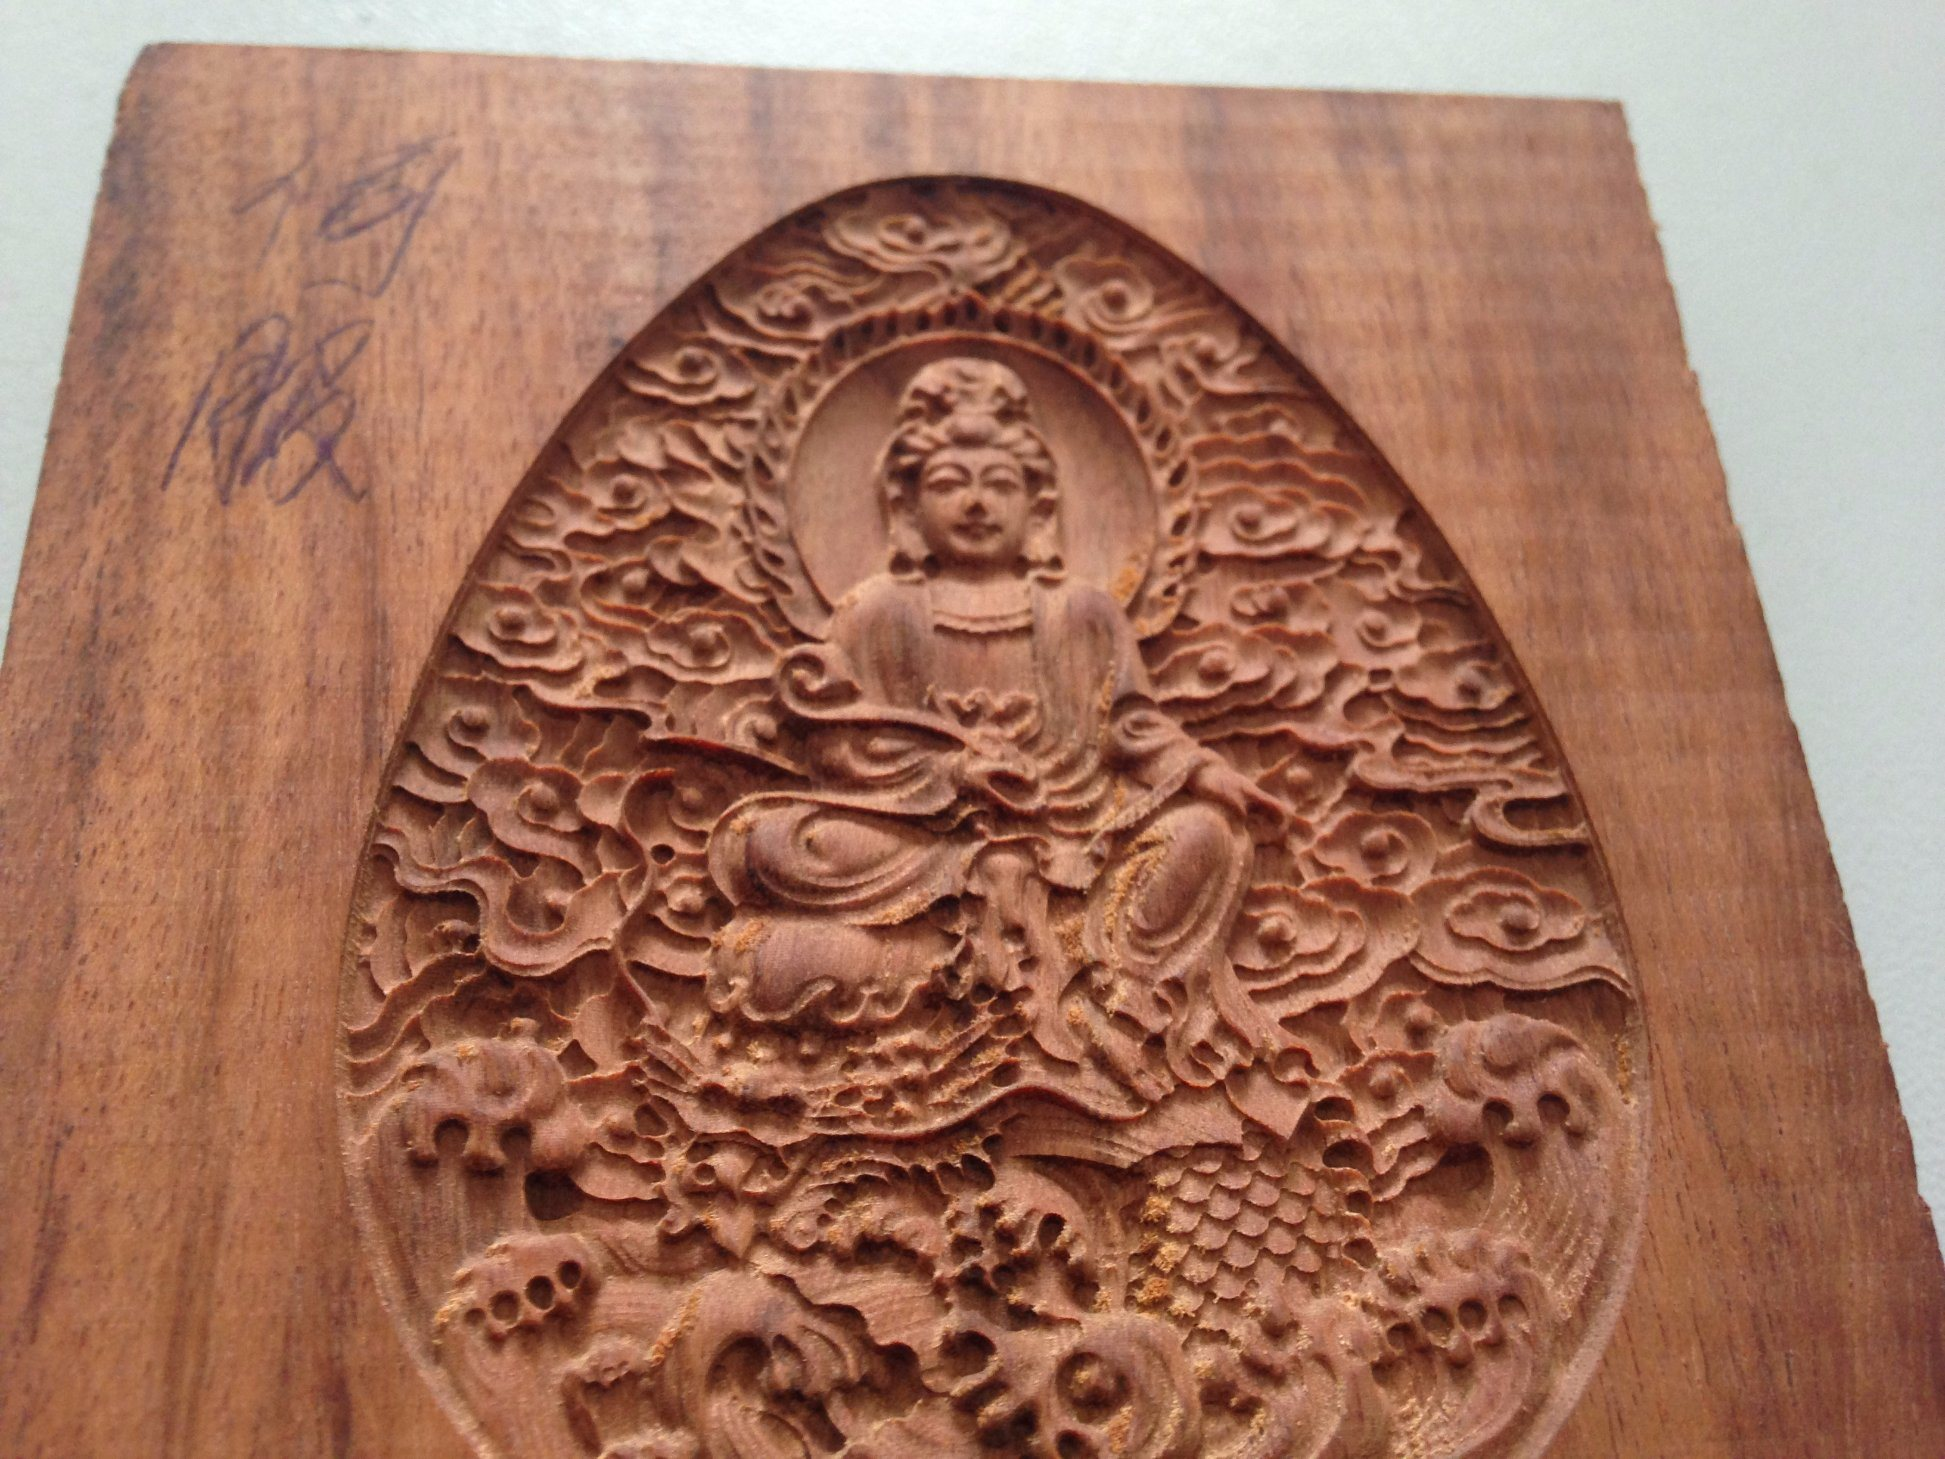 China 3D CNC Router CNC Wood Carving Woodworking CNC Machine